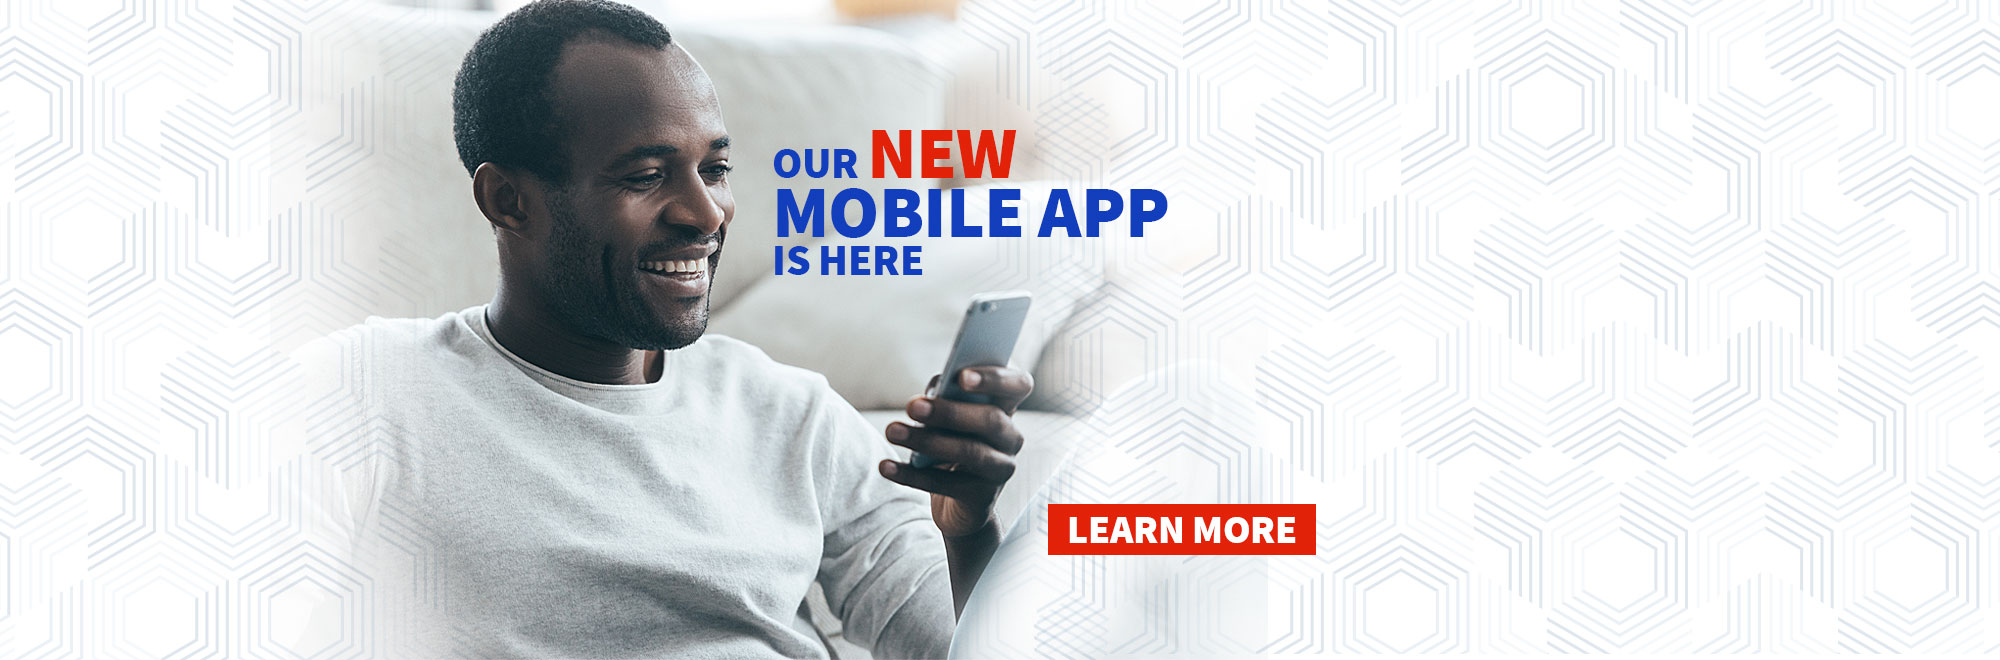 Our new Mobile App is here